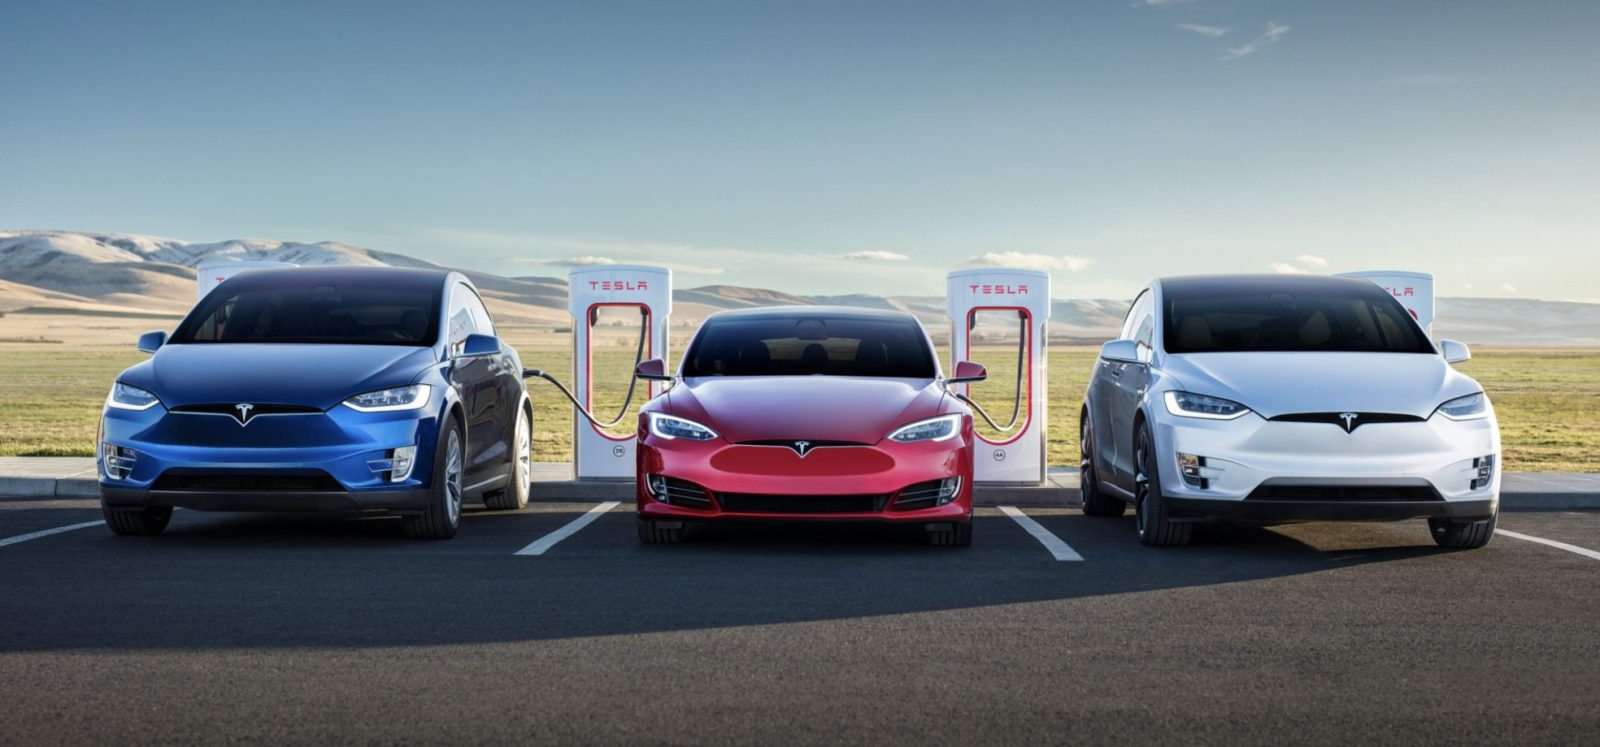 An array of Tesla model s and model x along with a supercharger